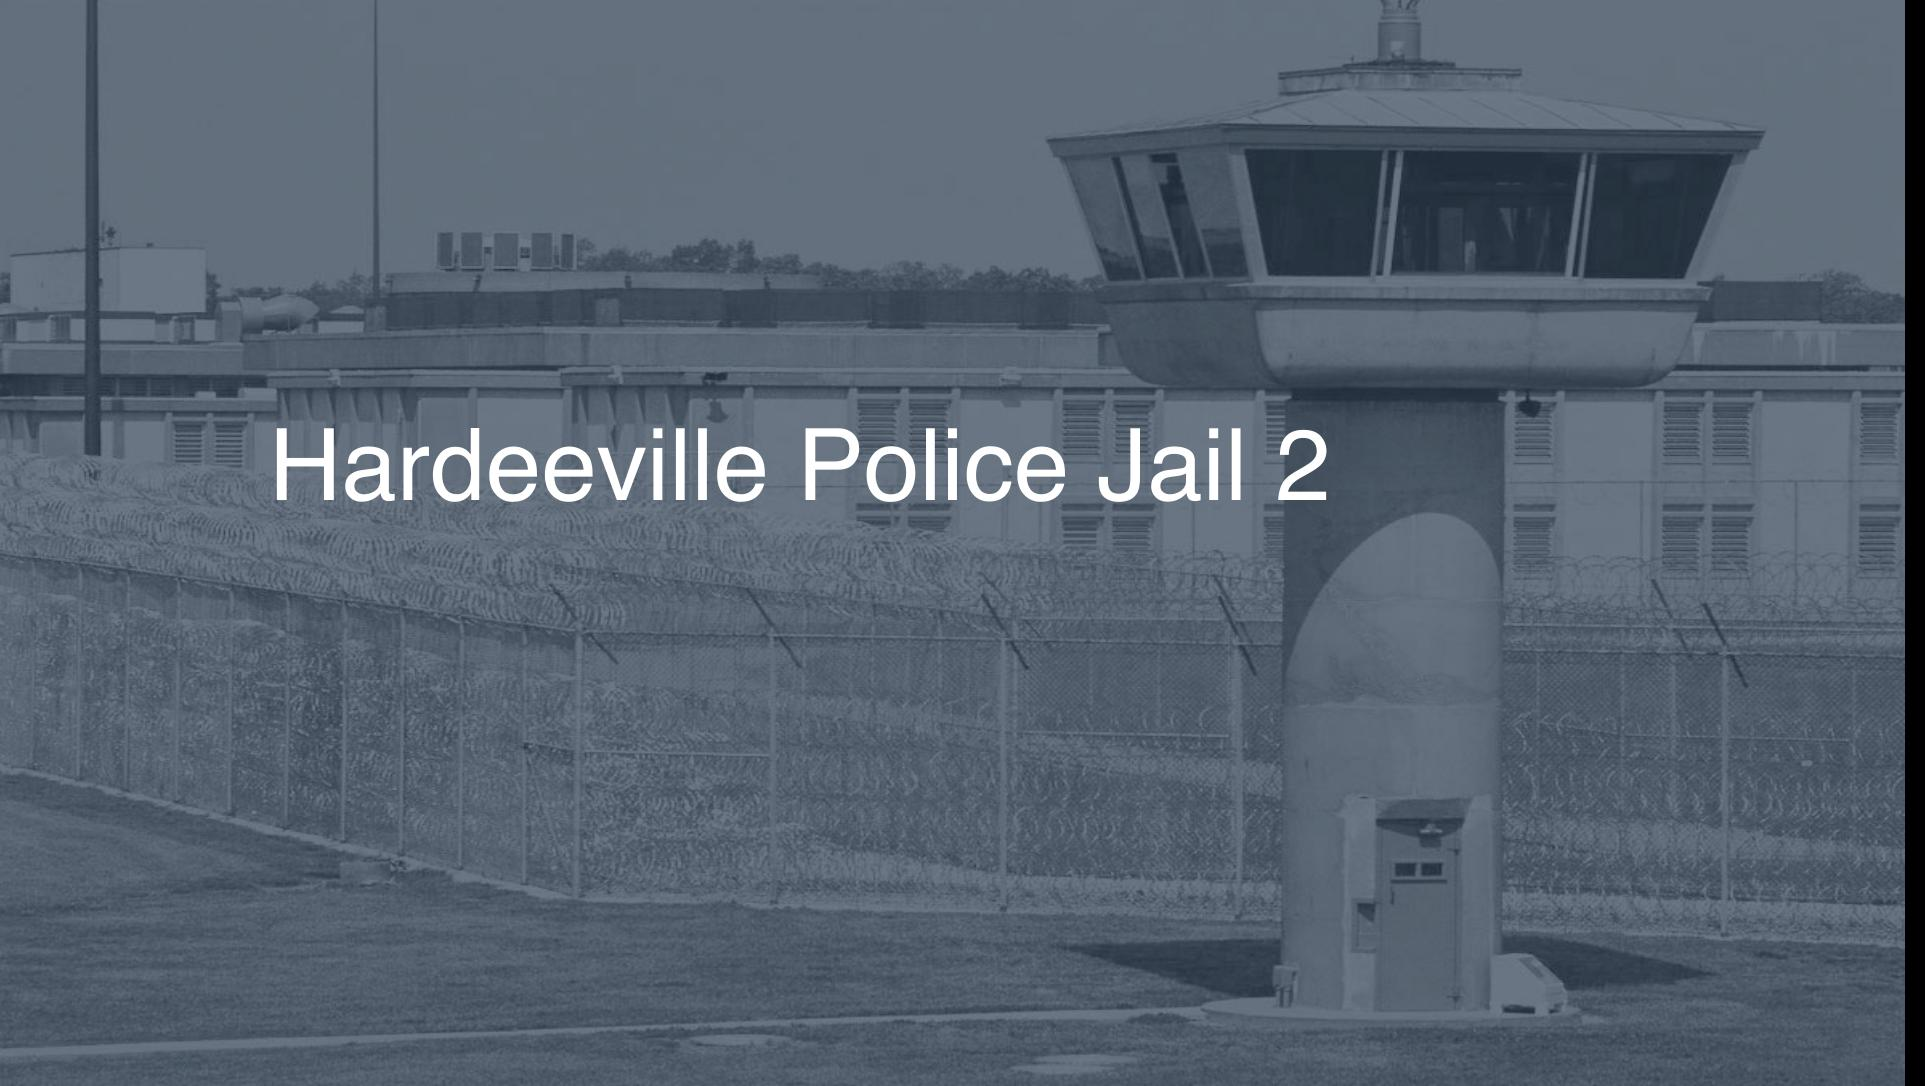 Hardeeville Police Jail correctional facility picture